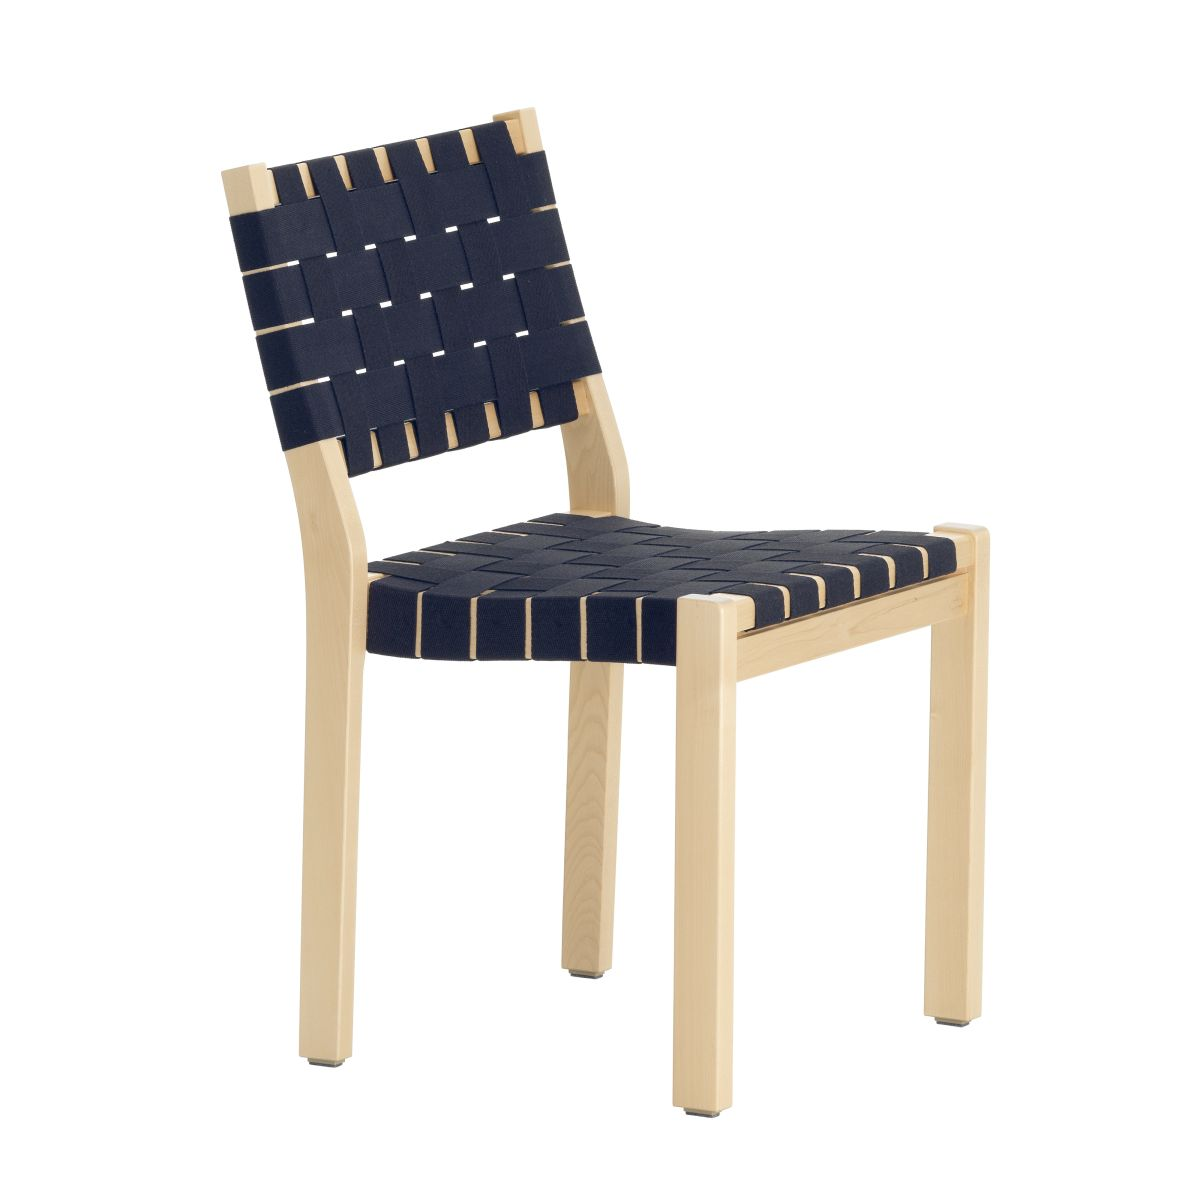 Chair 611 Clear Lacquered Birch Black Blue New Webbing F 2436651